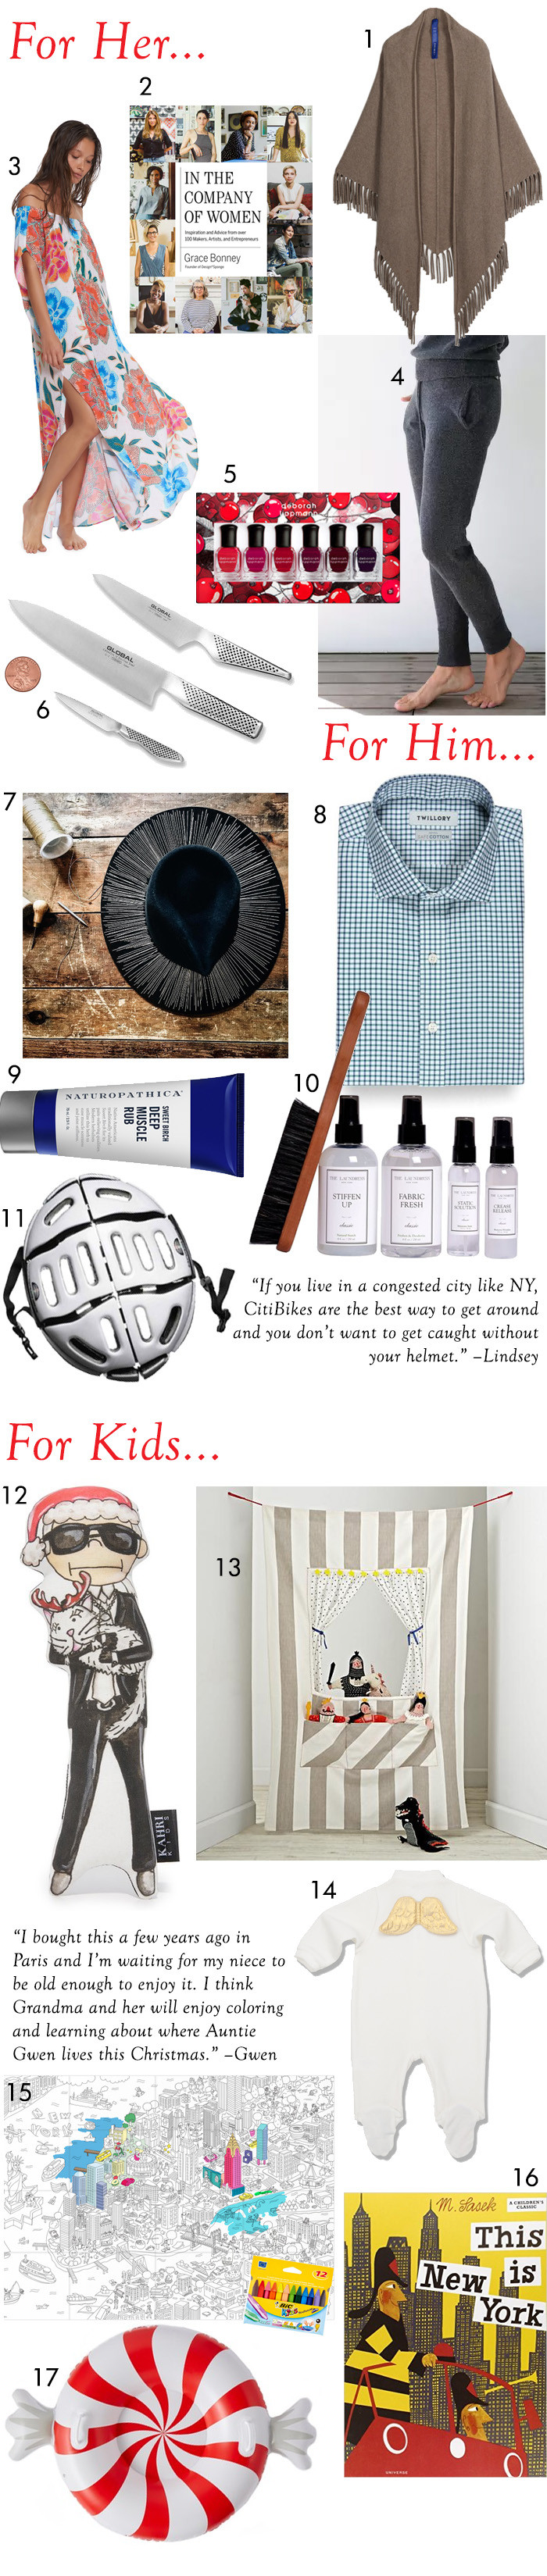 CMSPage_Things We Love | The Laundress Gift Guide 2016_ONE_SIZE_IMAGE_01